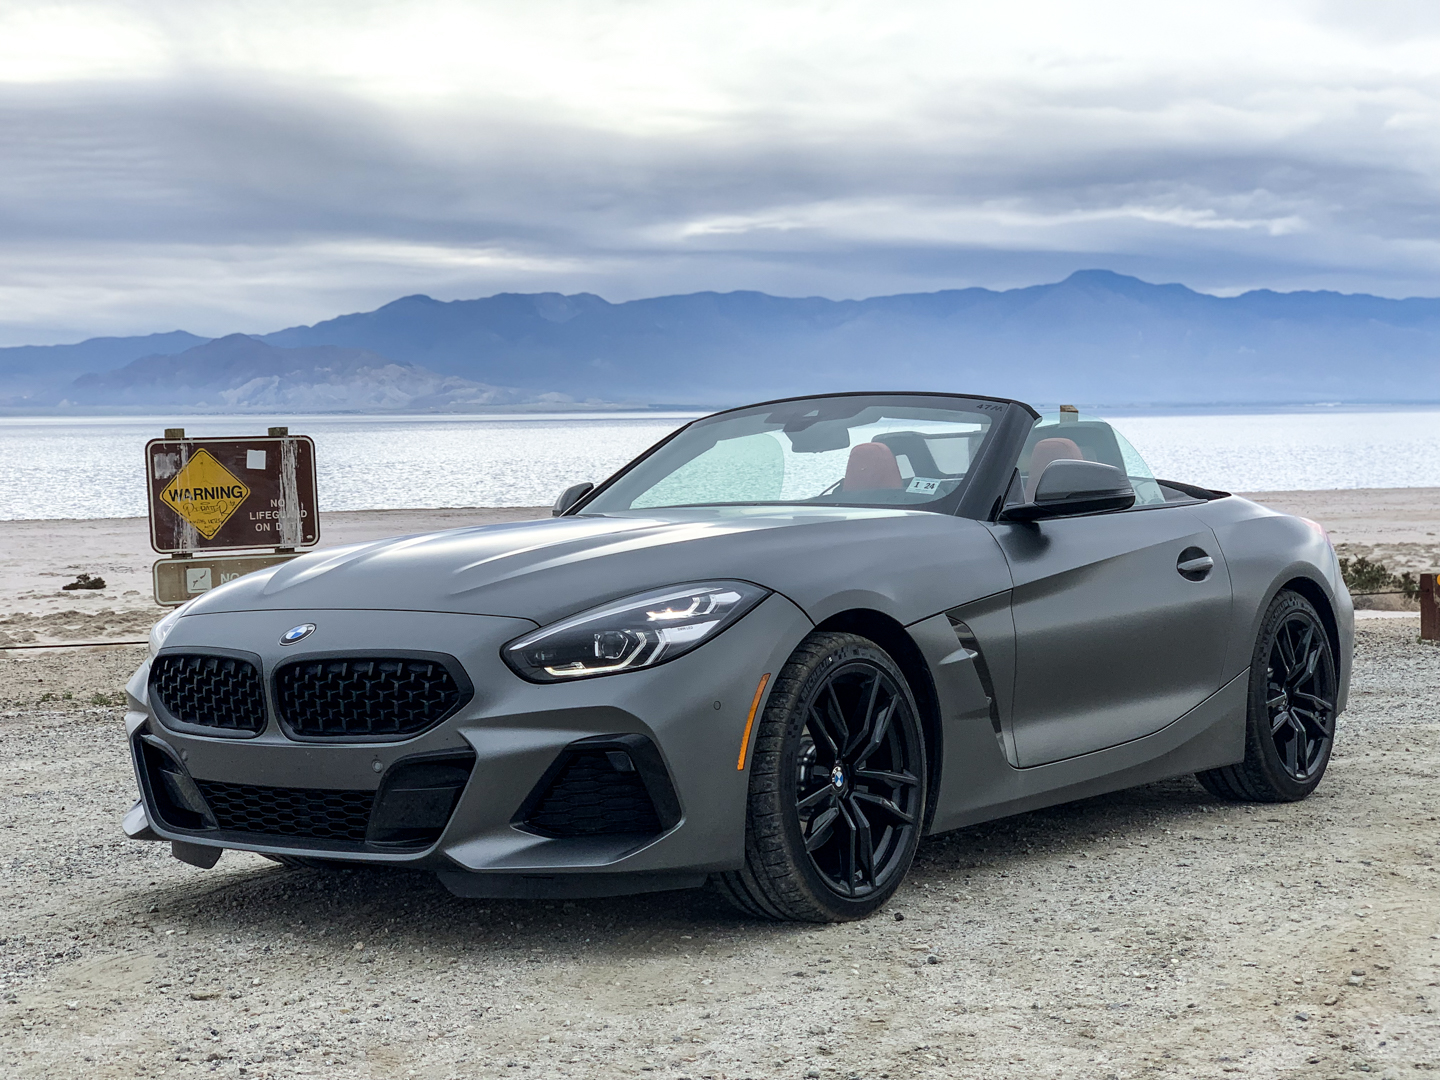 BMW Z4 sDrive30i Test Fest 1 of 25